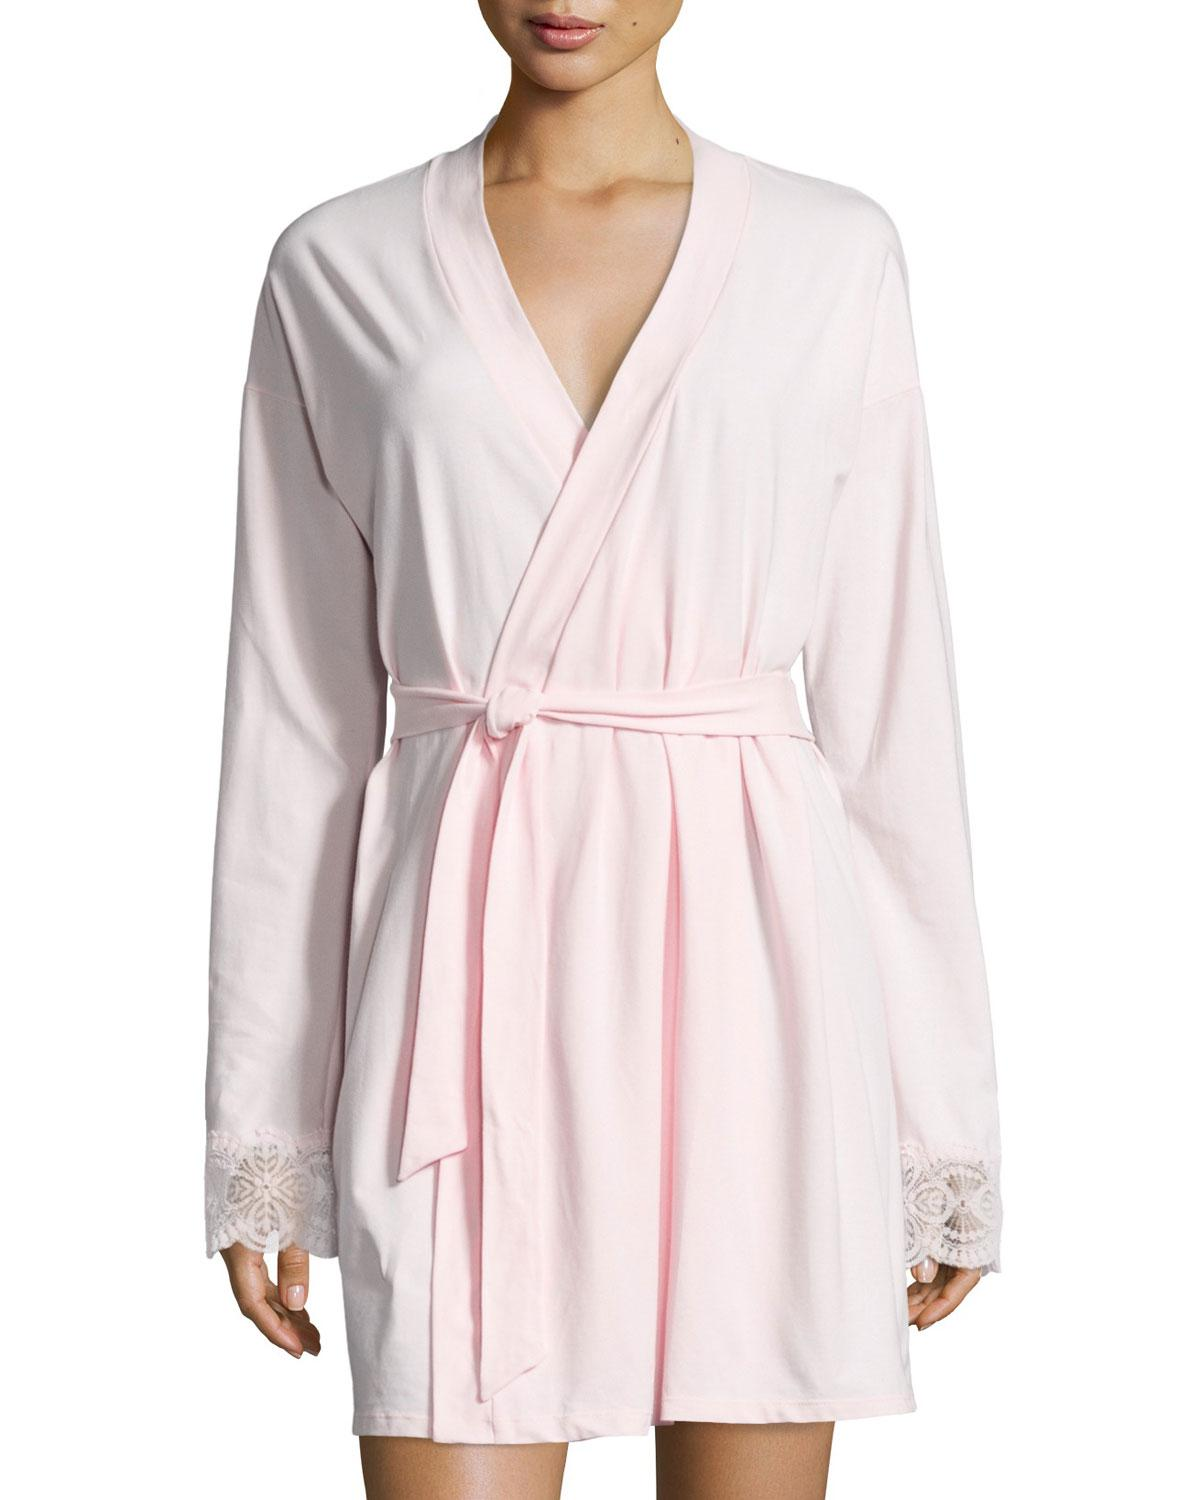 Lyst - Cosabella Sonia Jersey Lounge Robe in Pink b020b2652